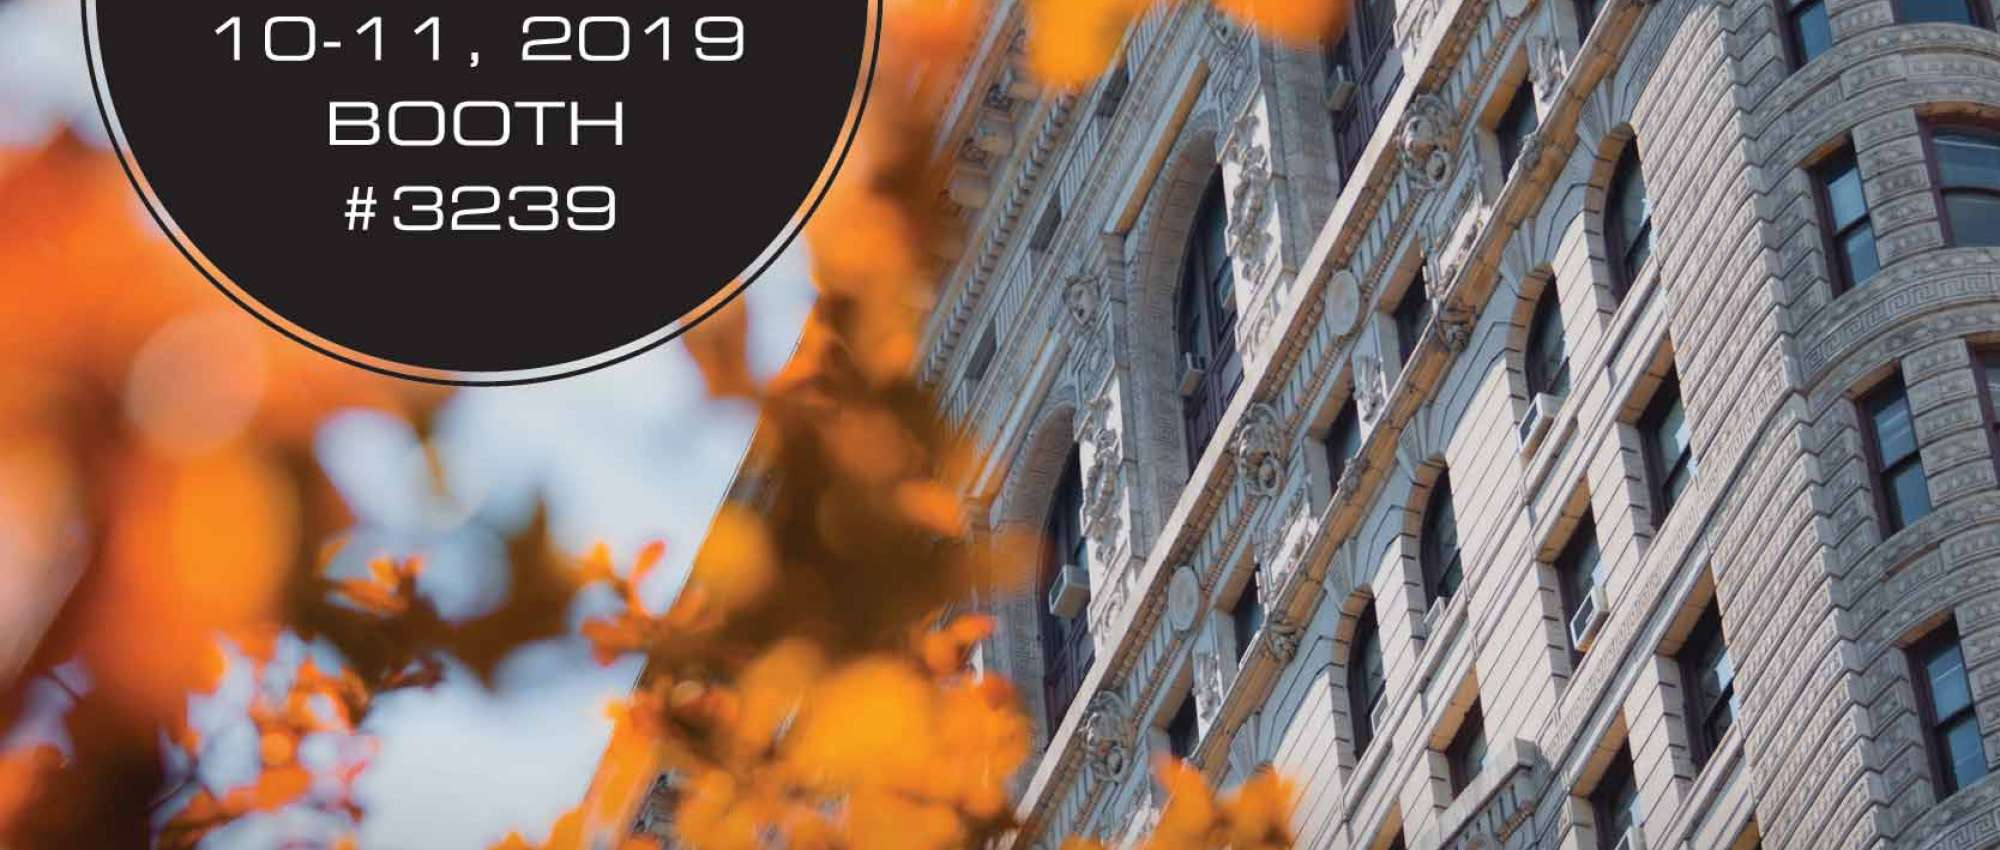 Only three more days to BDNY 2019